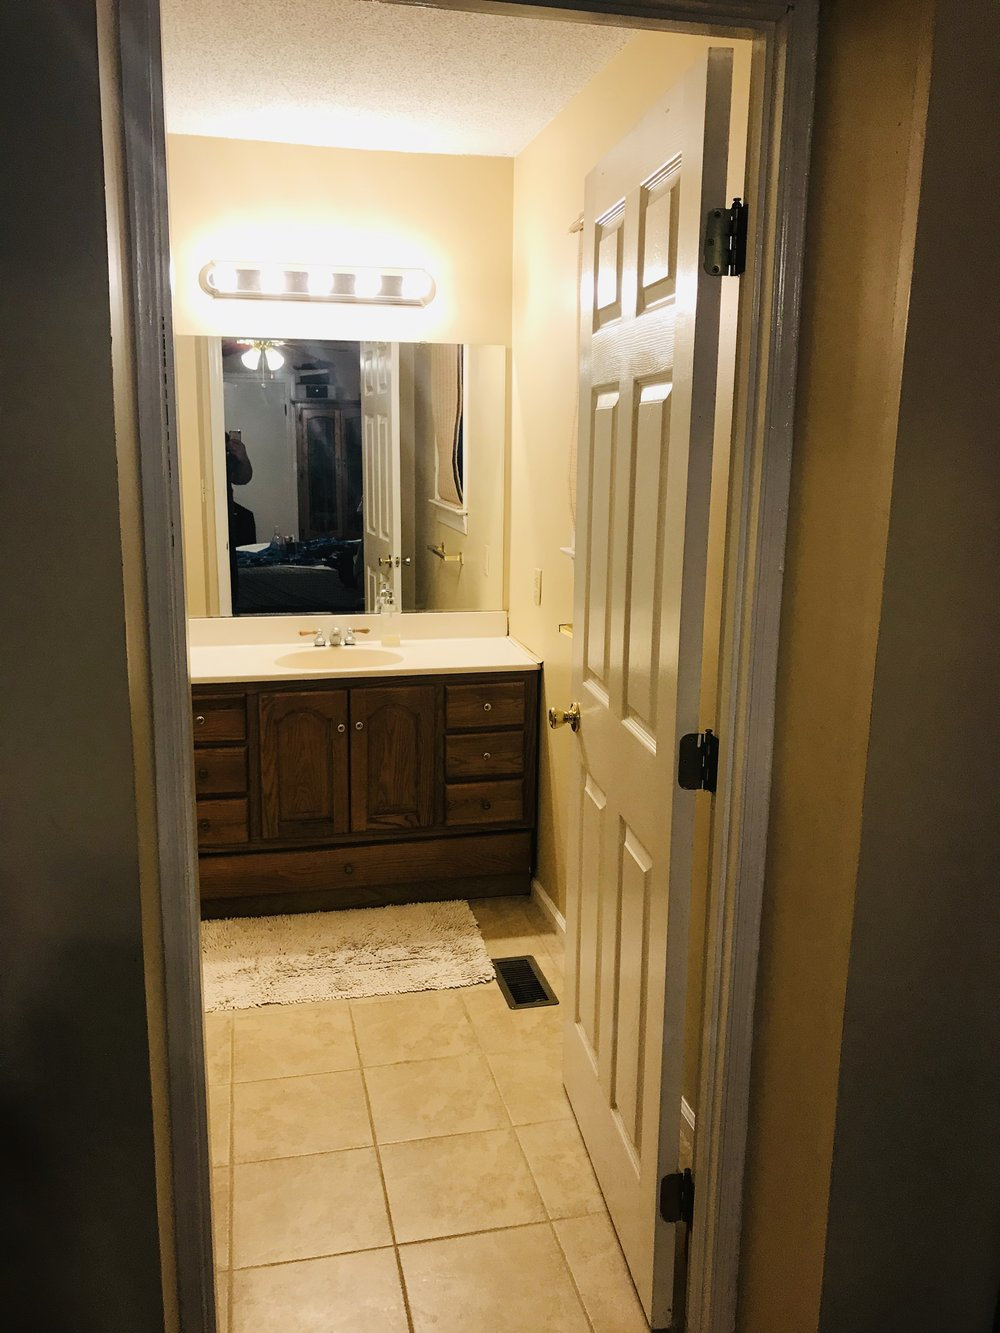 This is the master bath. We were planning to update this similar to how we did the hall bath.